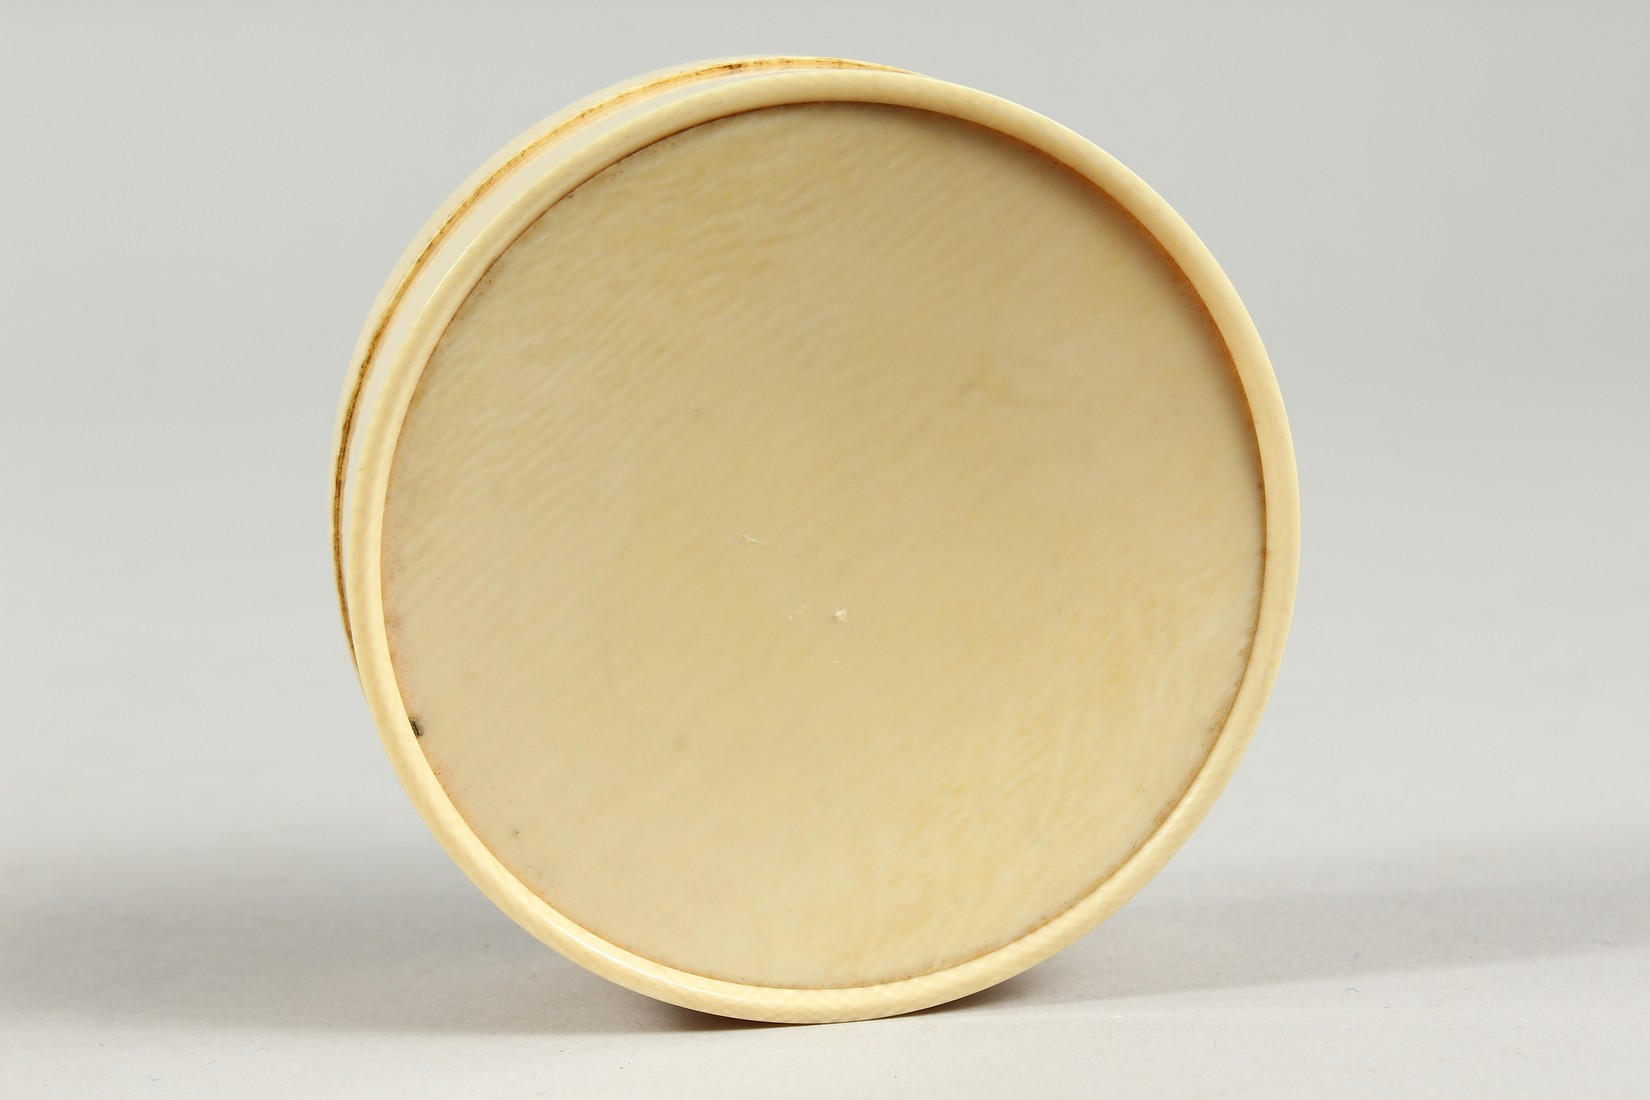 A GEORGIAN IVORY CIRCULAR BOX, the top painted with a portrait of a young lady in a plumed hat. 3ins - Image 7 of 8